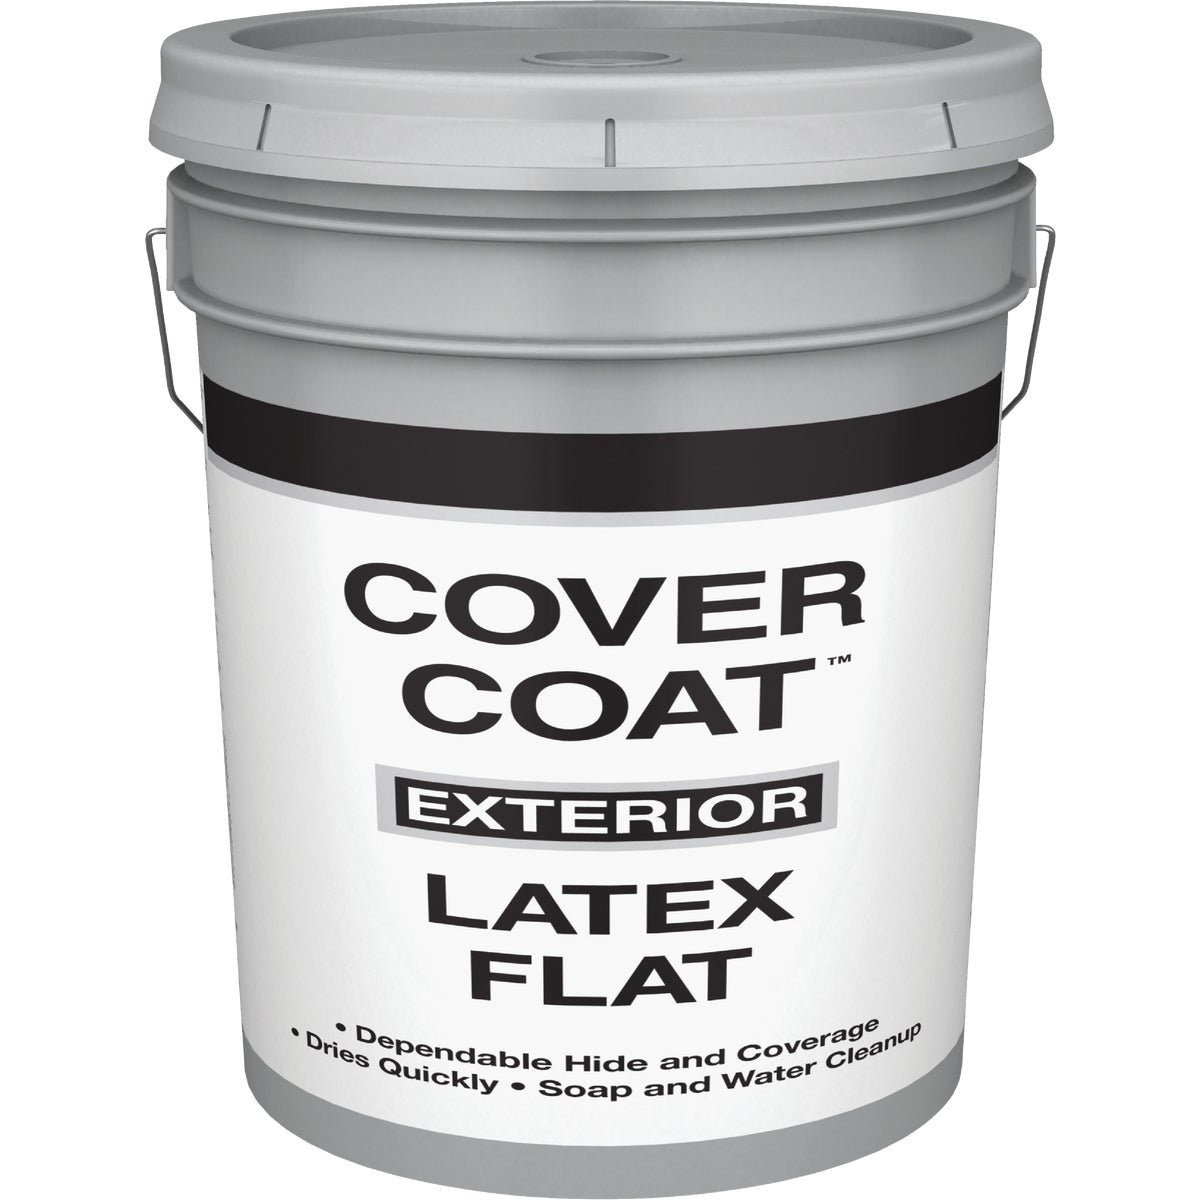 EXT FLAT WHITE PAINT - 044.0000555.008 by Valspar Corp